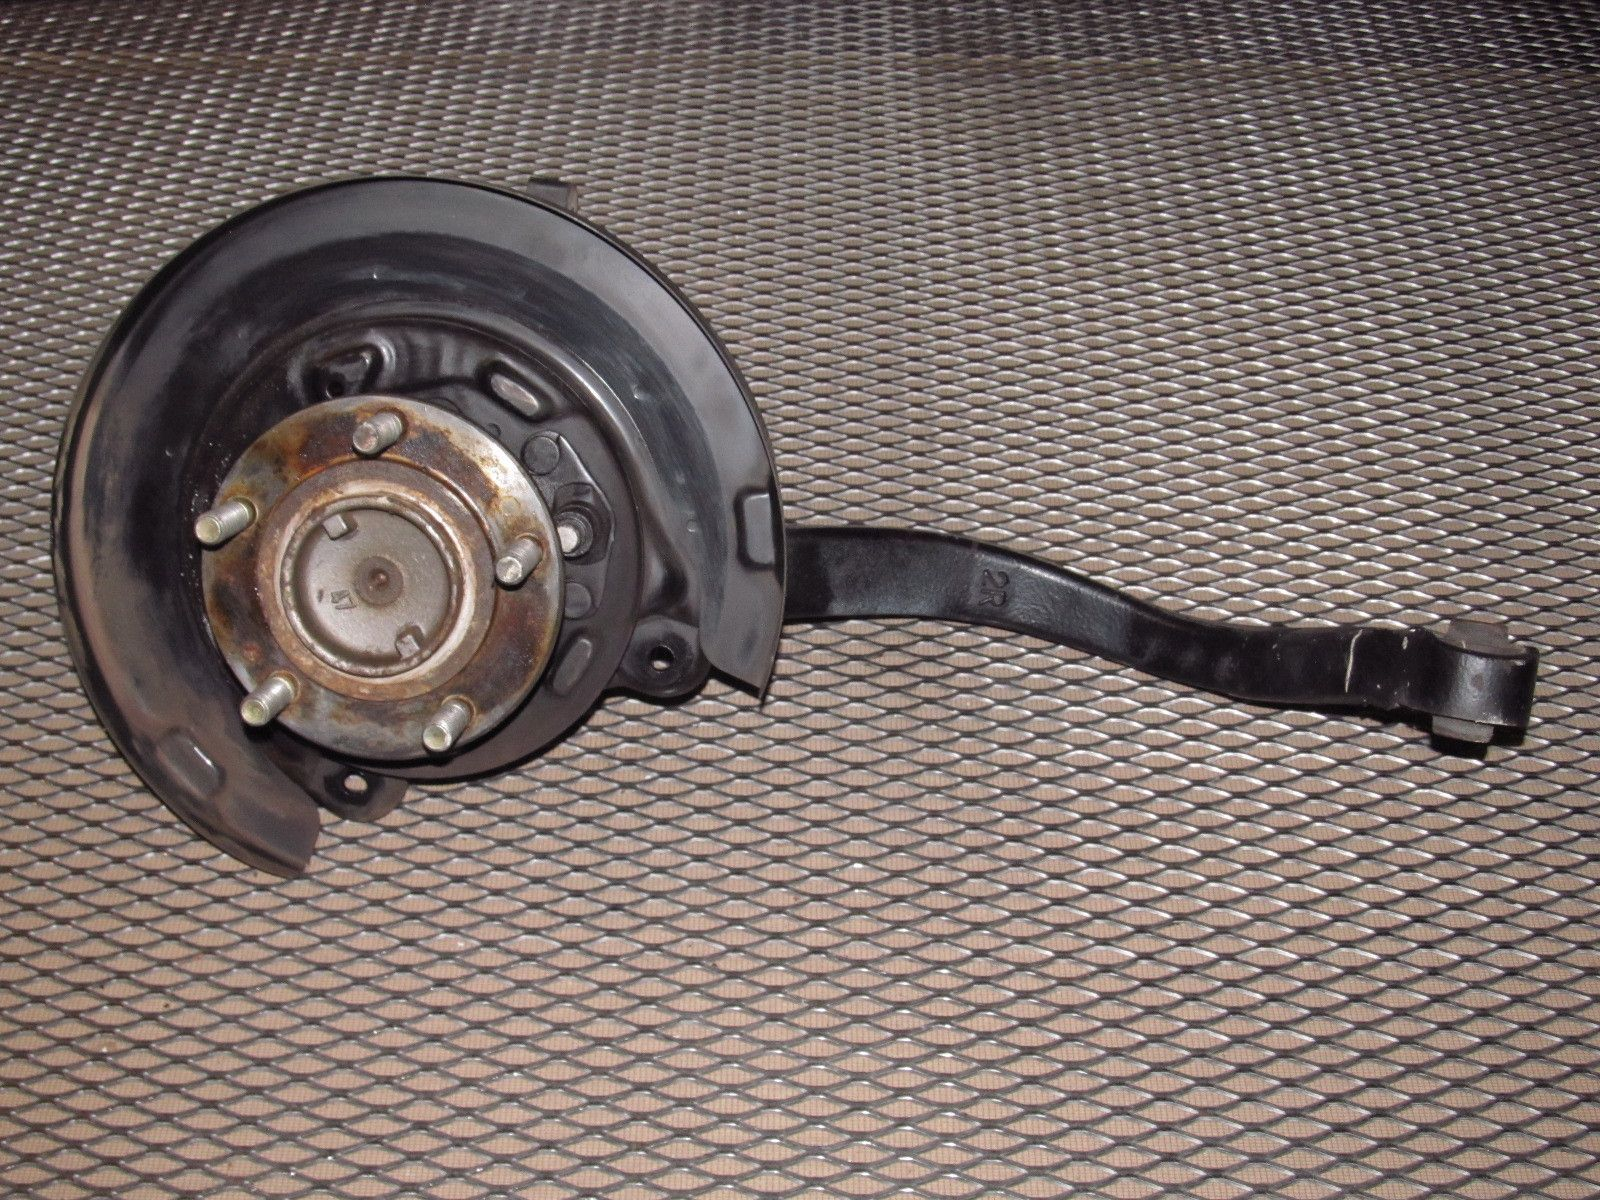 97 98 99 mitsubishi eclipse oem rear spindle hub assembly right